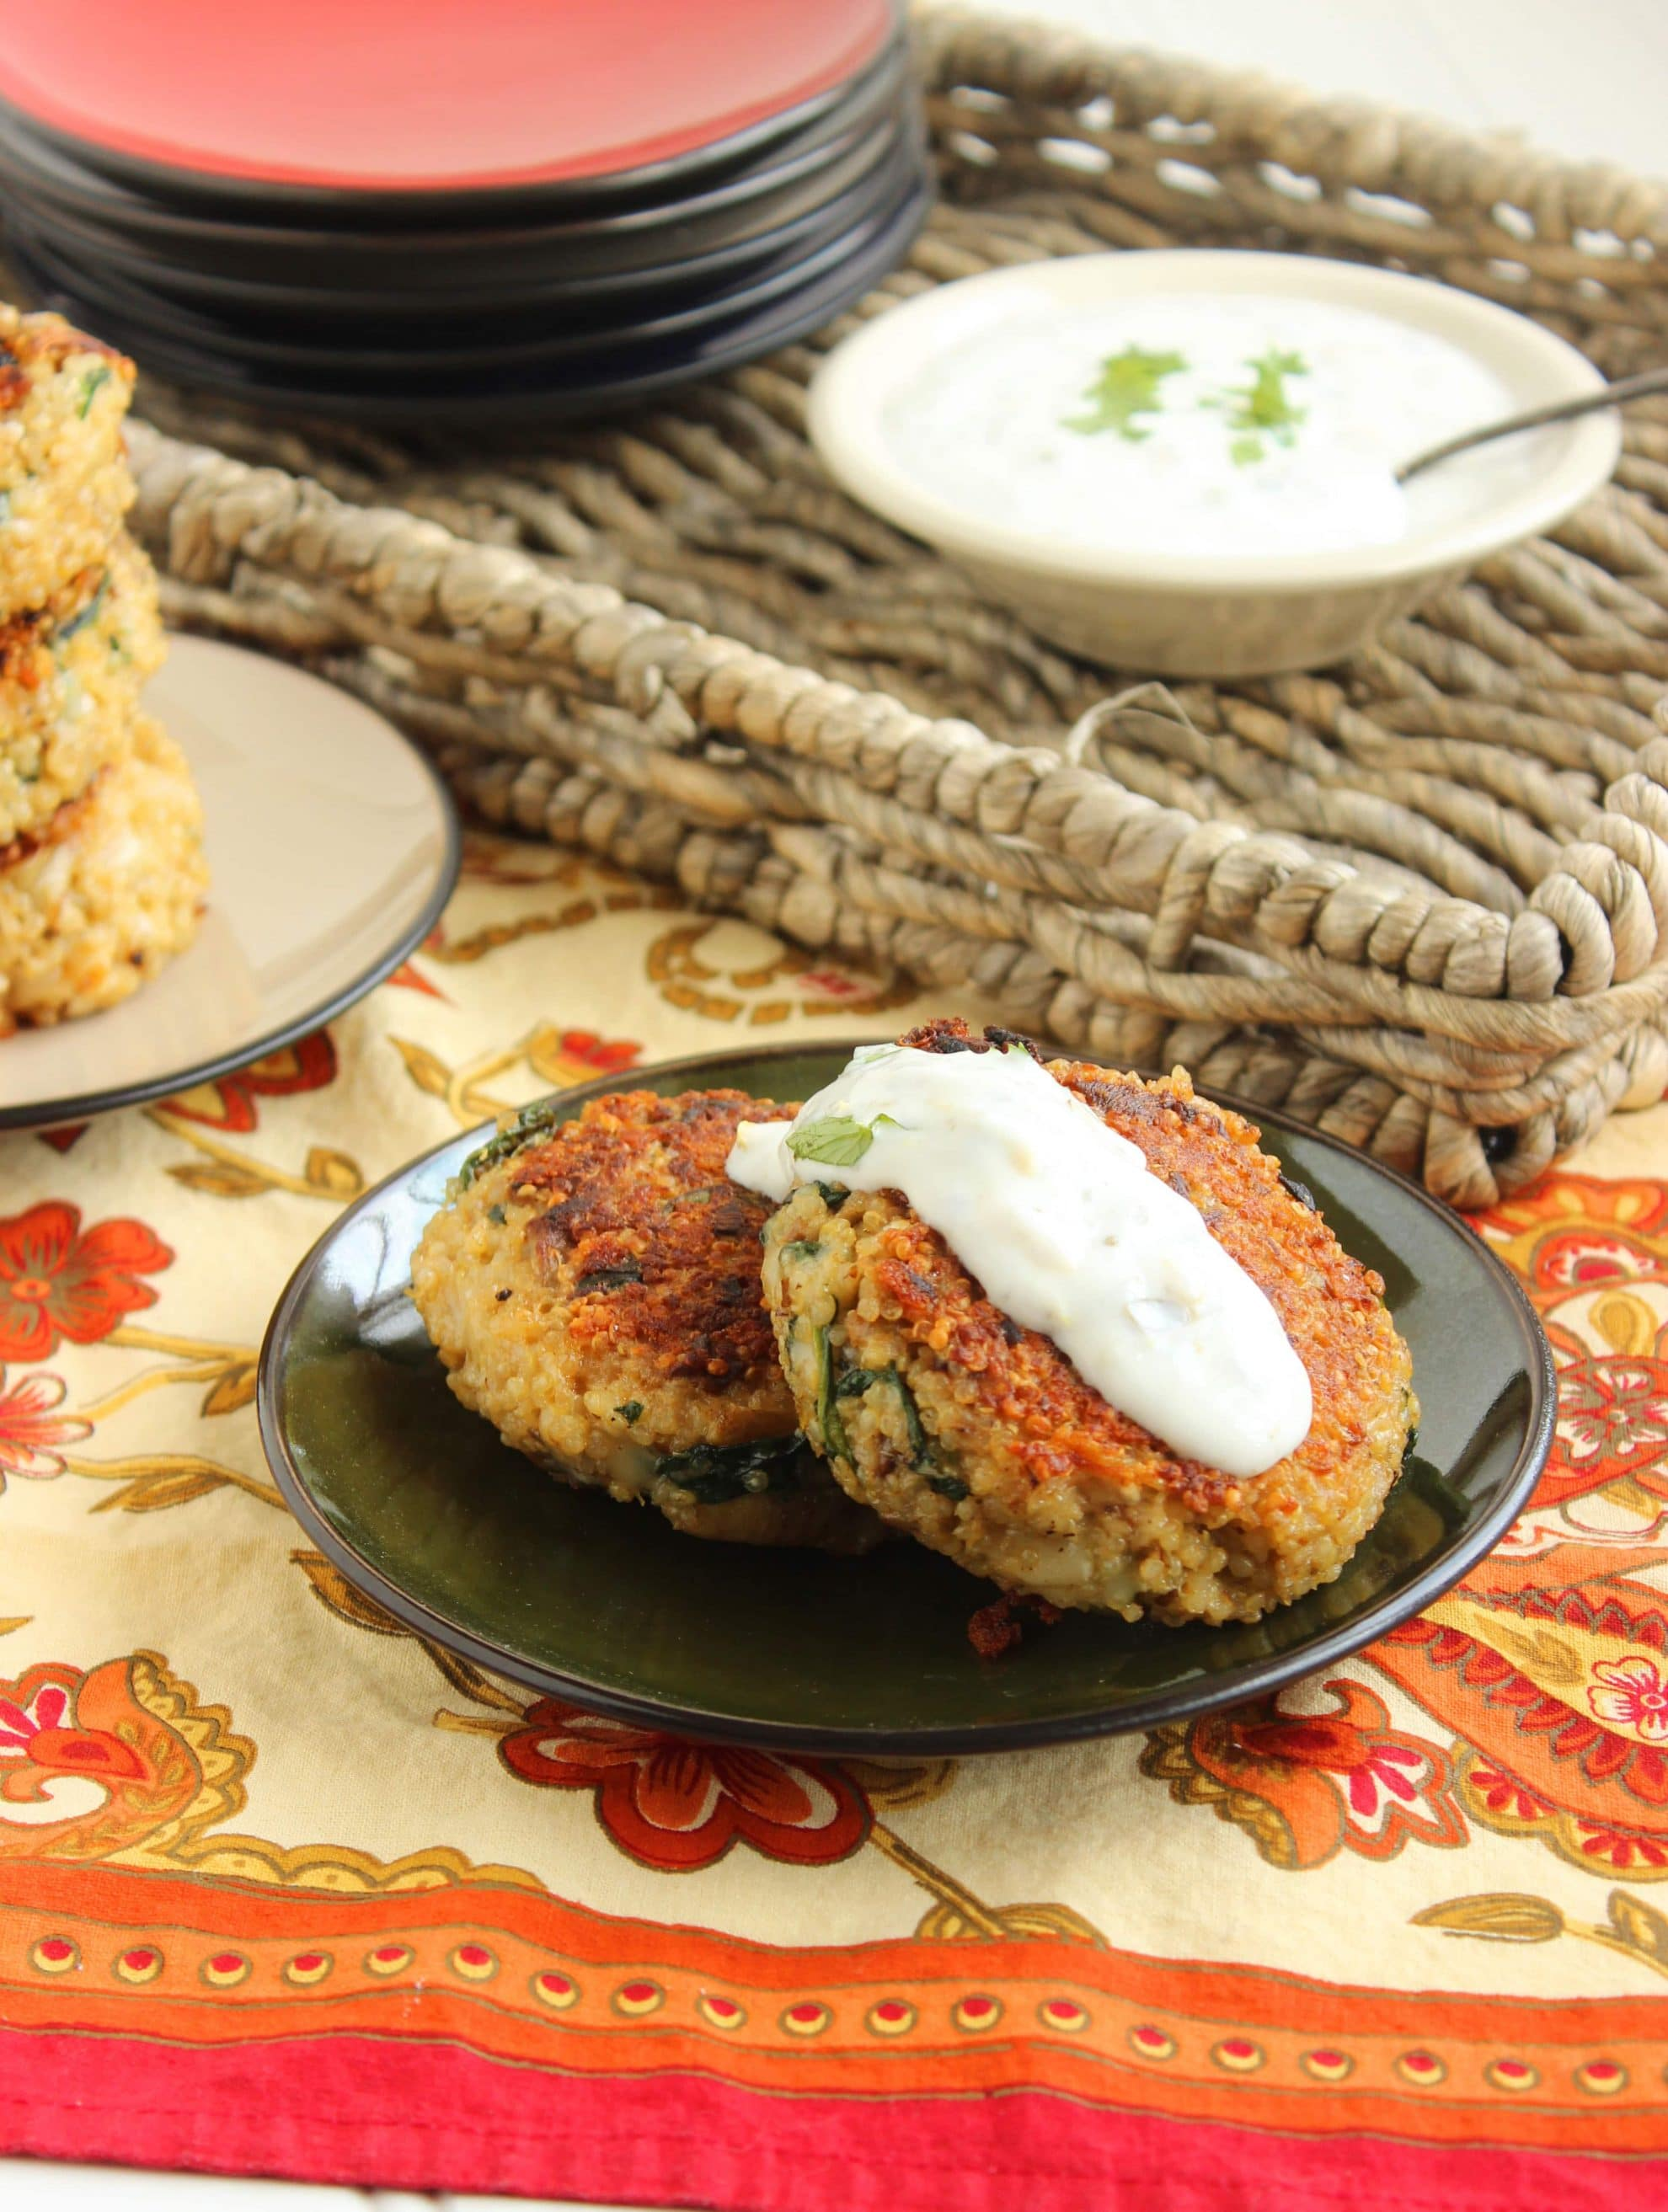 Cheesy Spinach Artichoke Cakes With Lemon Caper Sauce The Suburban Soapbox